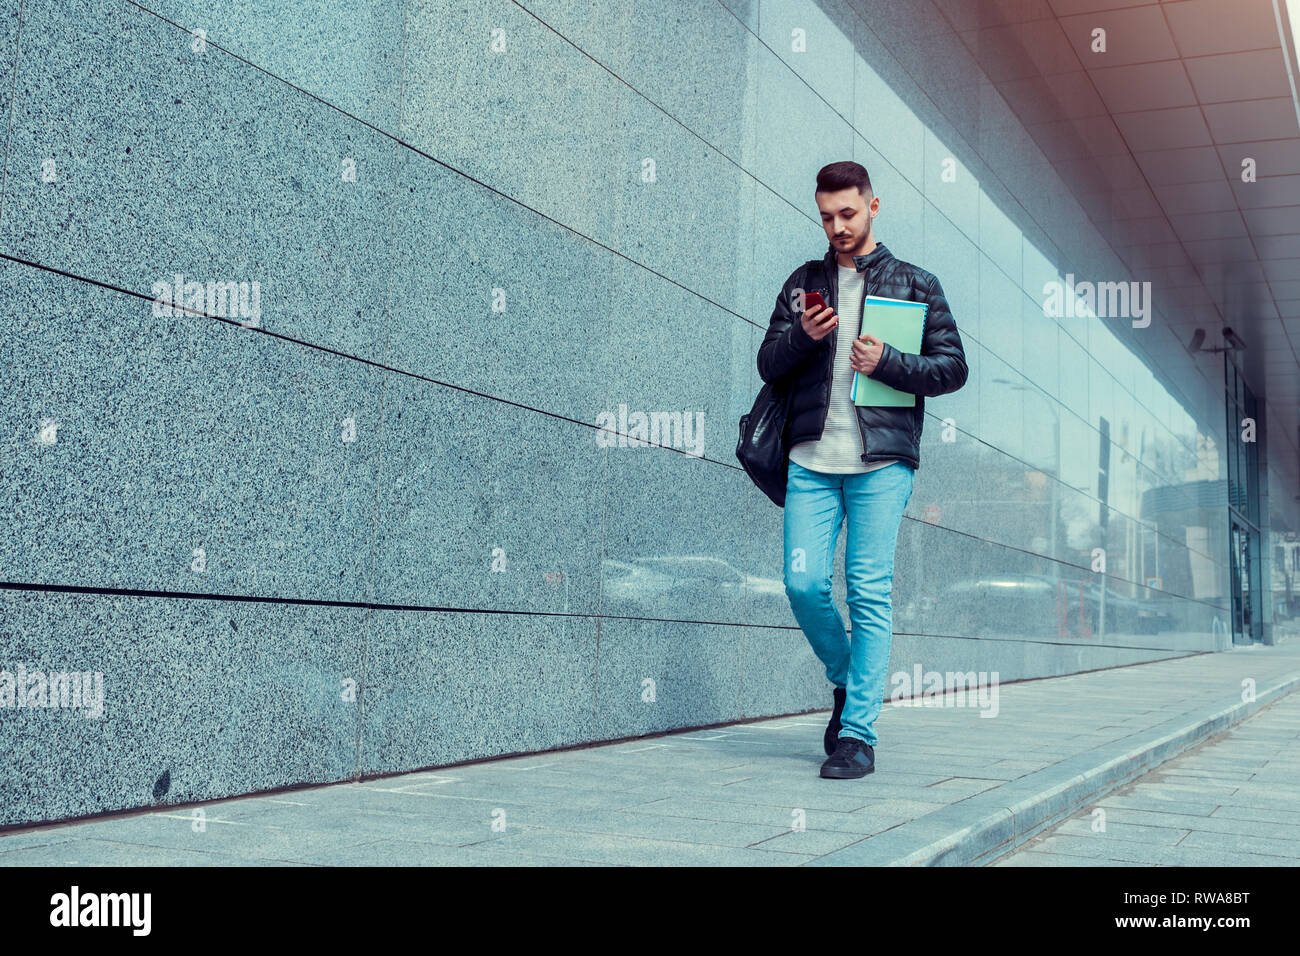 Serious arabian student using smartphone in city center. Young man hurrying up to university. - Stock Image